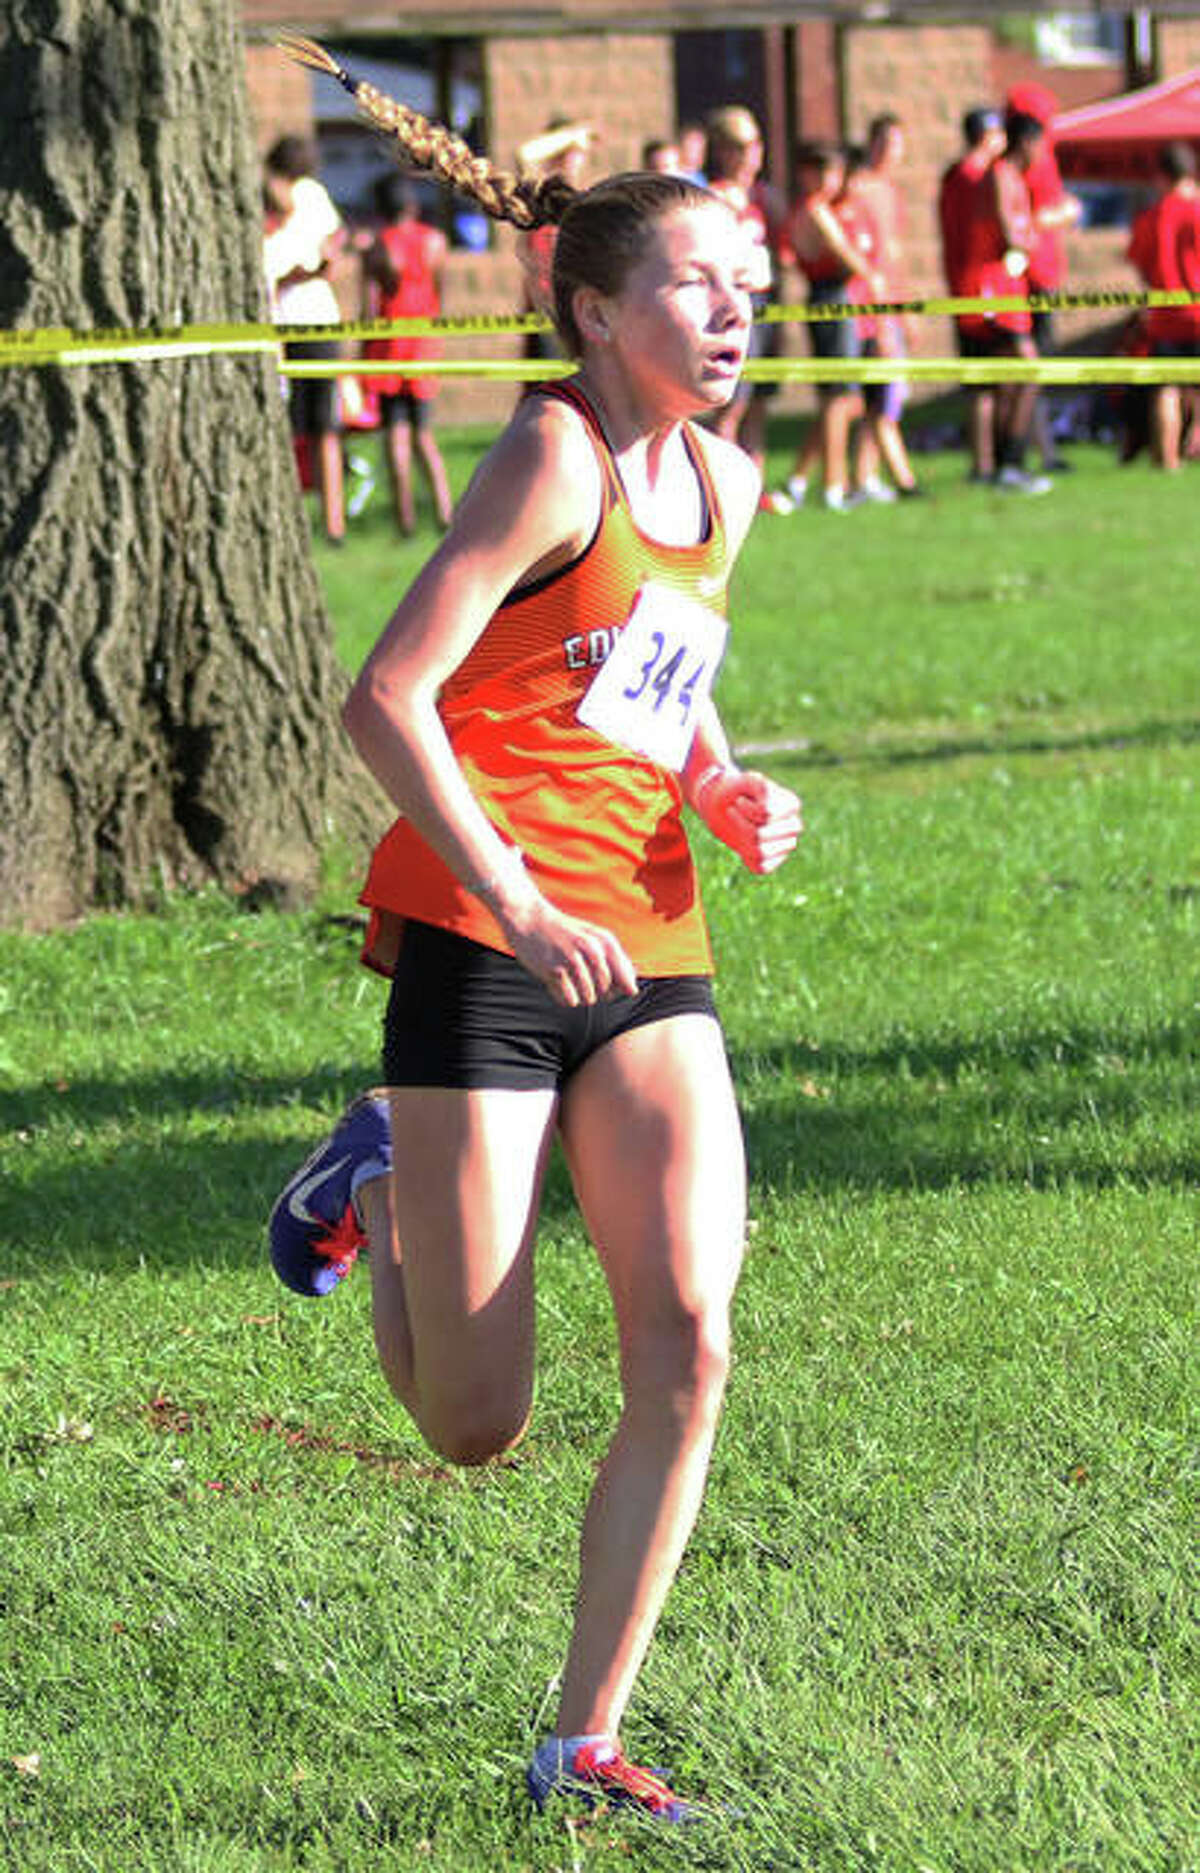 Edwardsville's Riley Knoyle approaches the finish in third place as a freshman in last season's Granite City Invite.